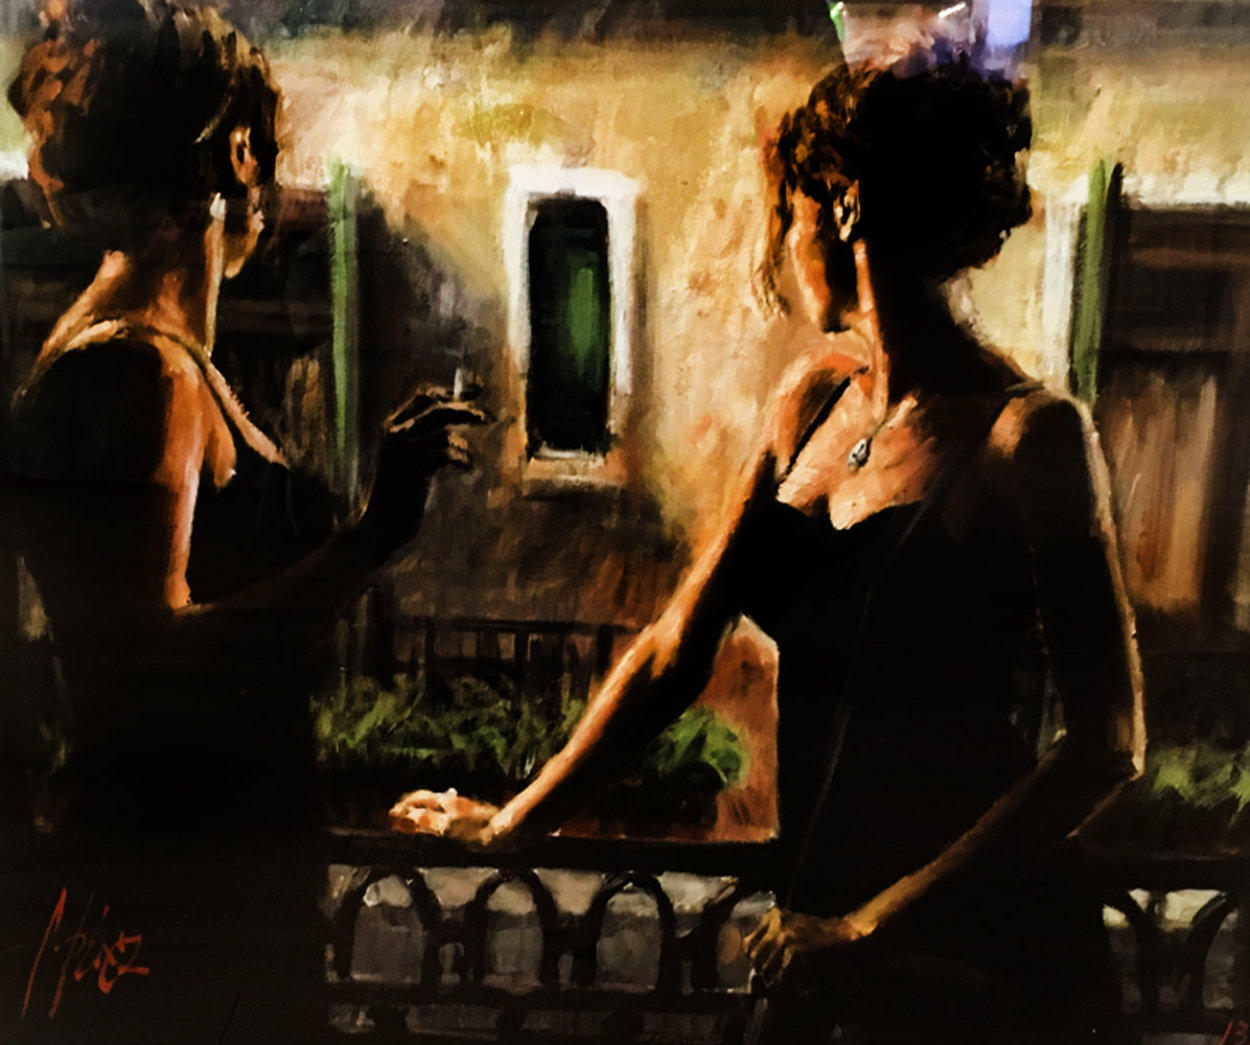 Balcony At Buenos Aires V Embellished 2007 Limited Edition Print by Fabian Perez